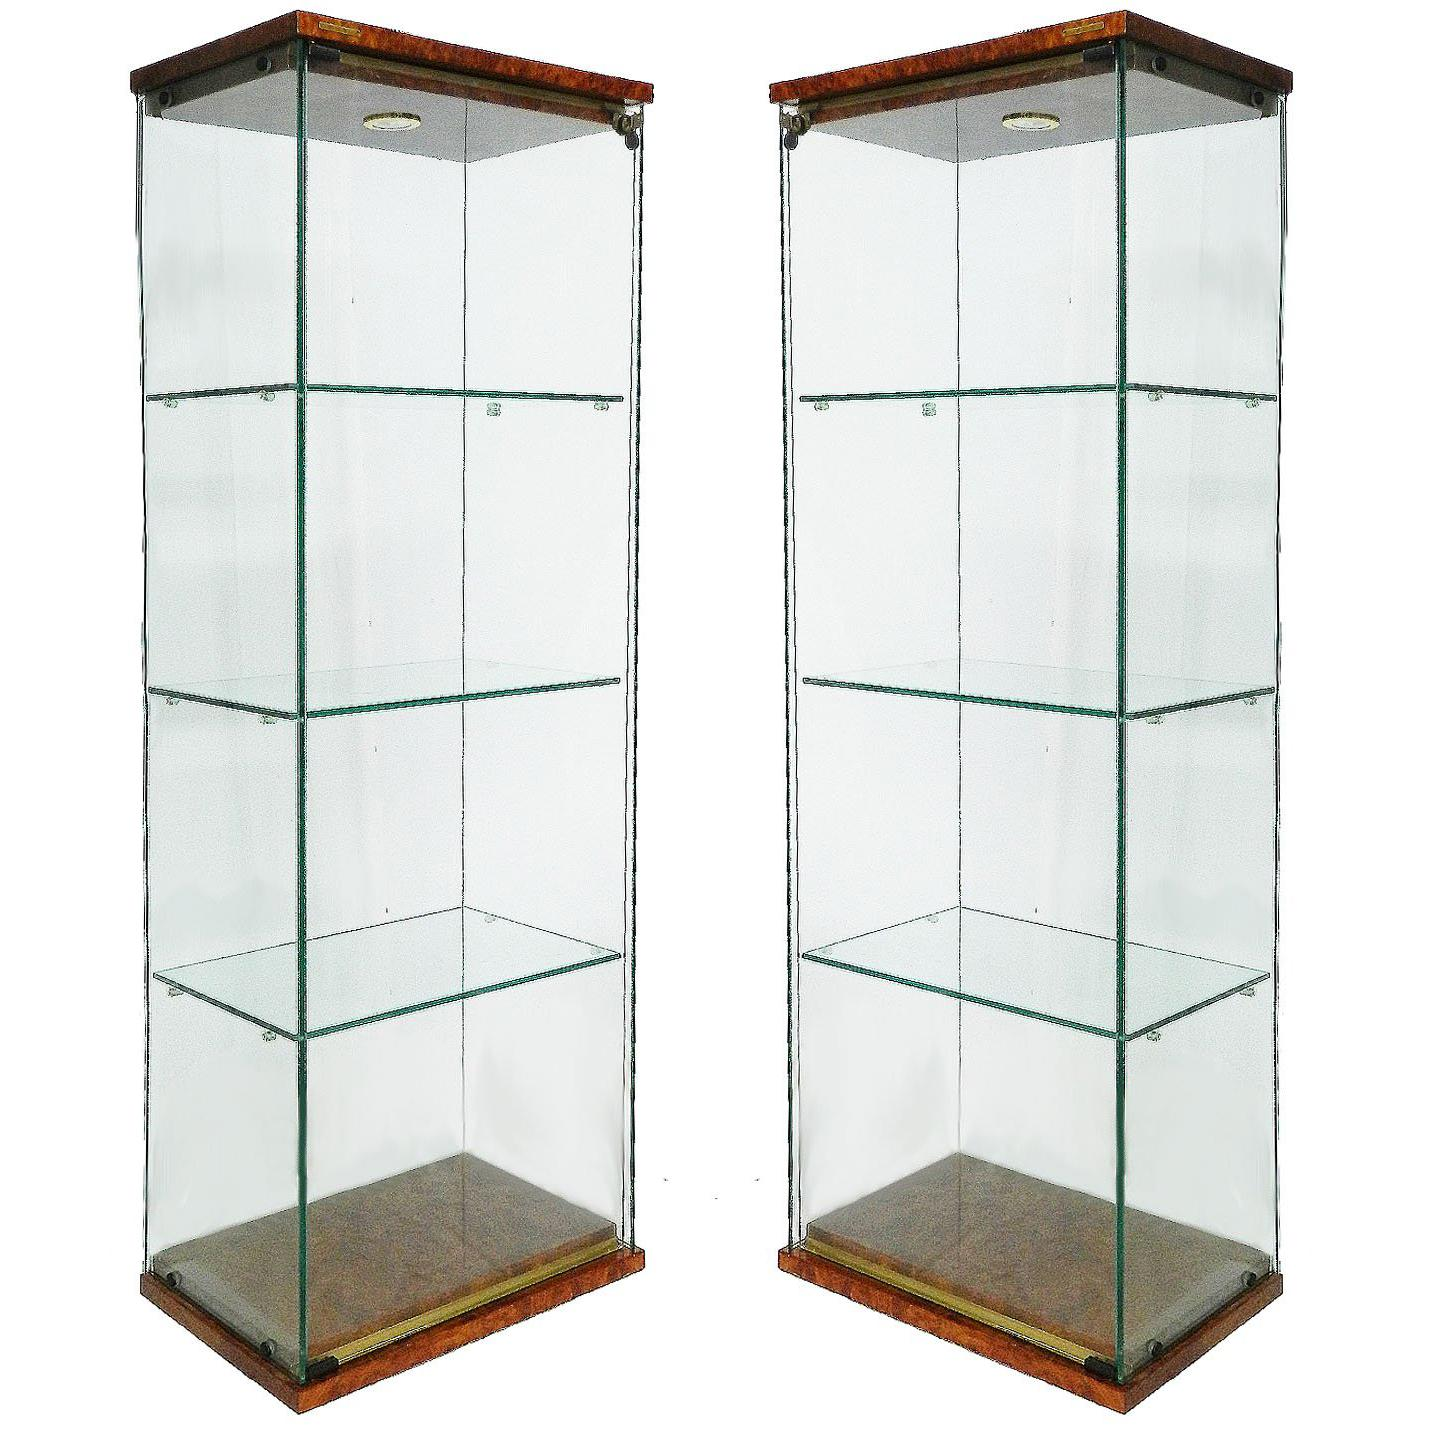 Pair Of Pierre Vandel Vitrines French Midcentury Illuminated Showcase  Cabinets For Sale